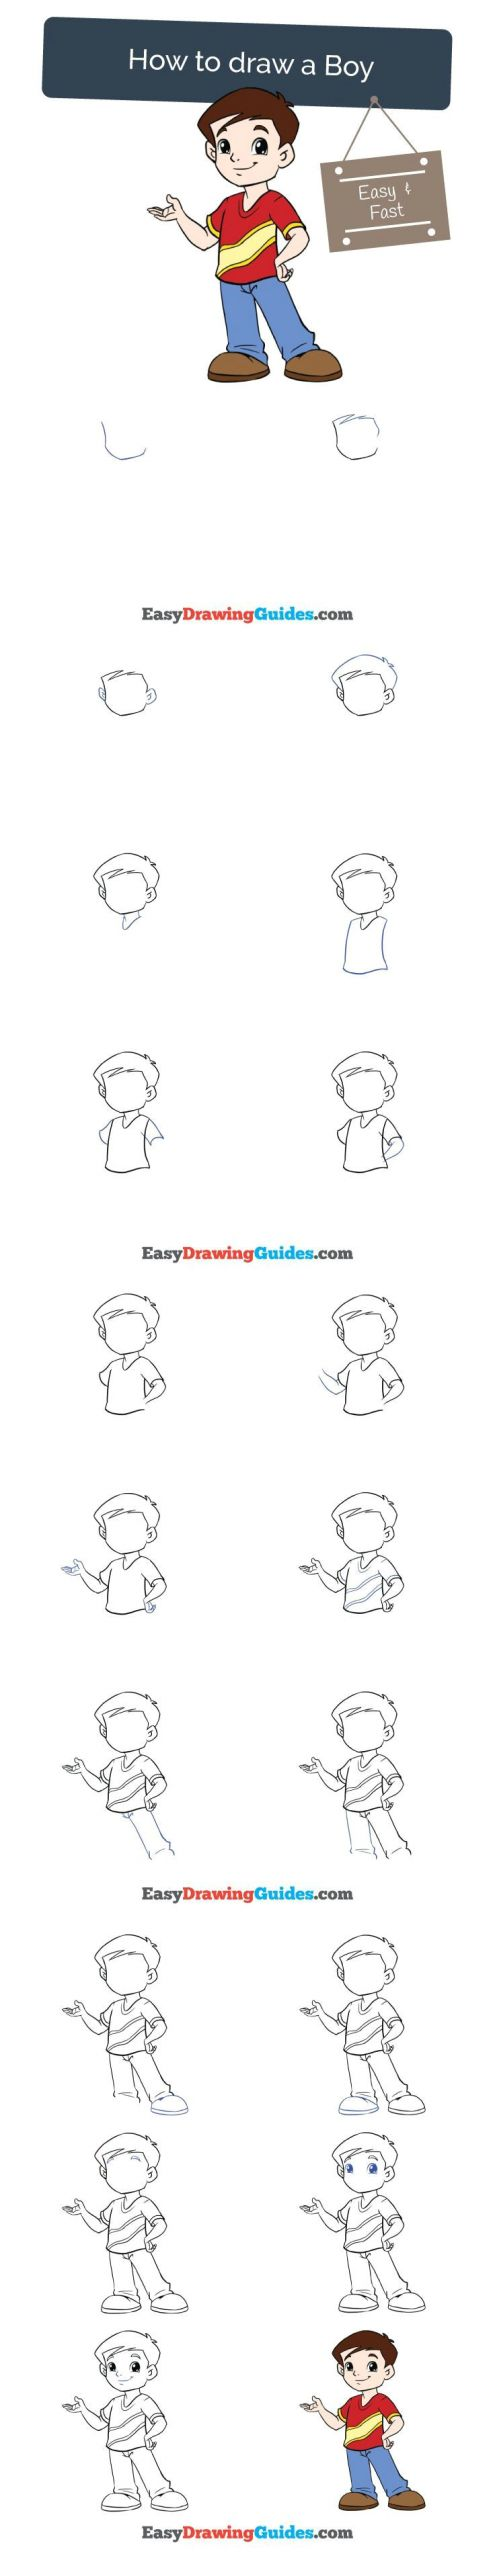 Boy Easy Drawing How to Draw A Boy Drawing Tutorials for Kids Easy